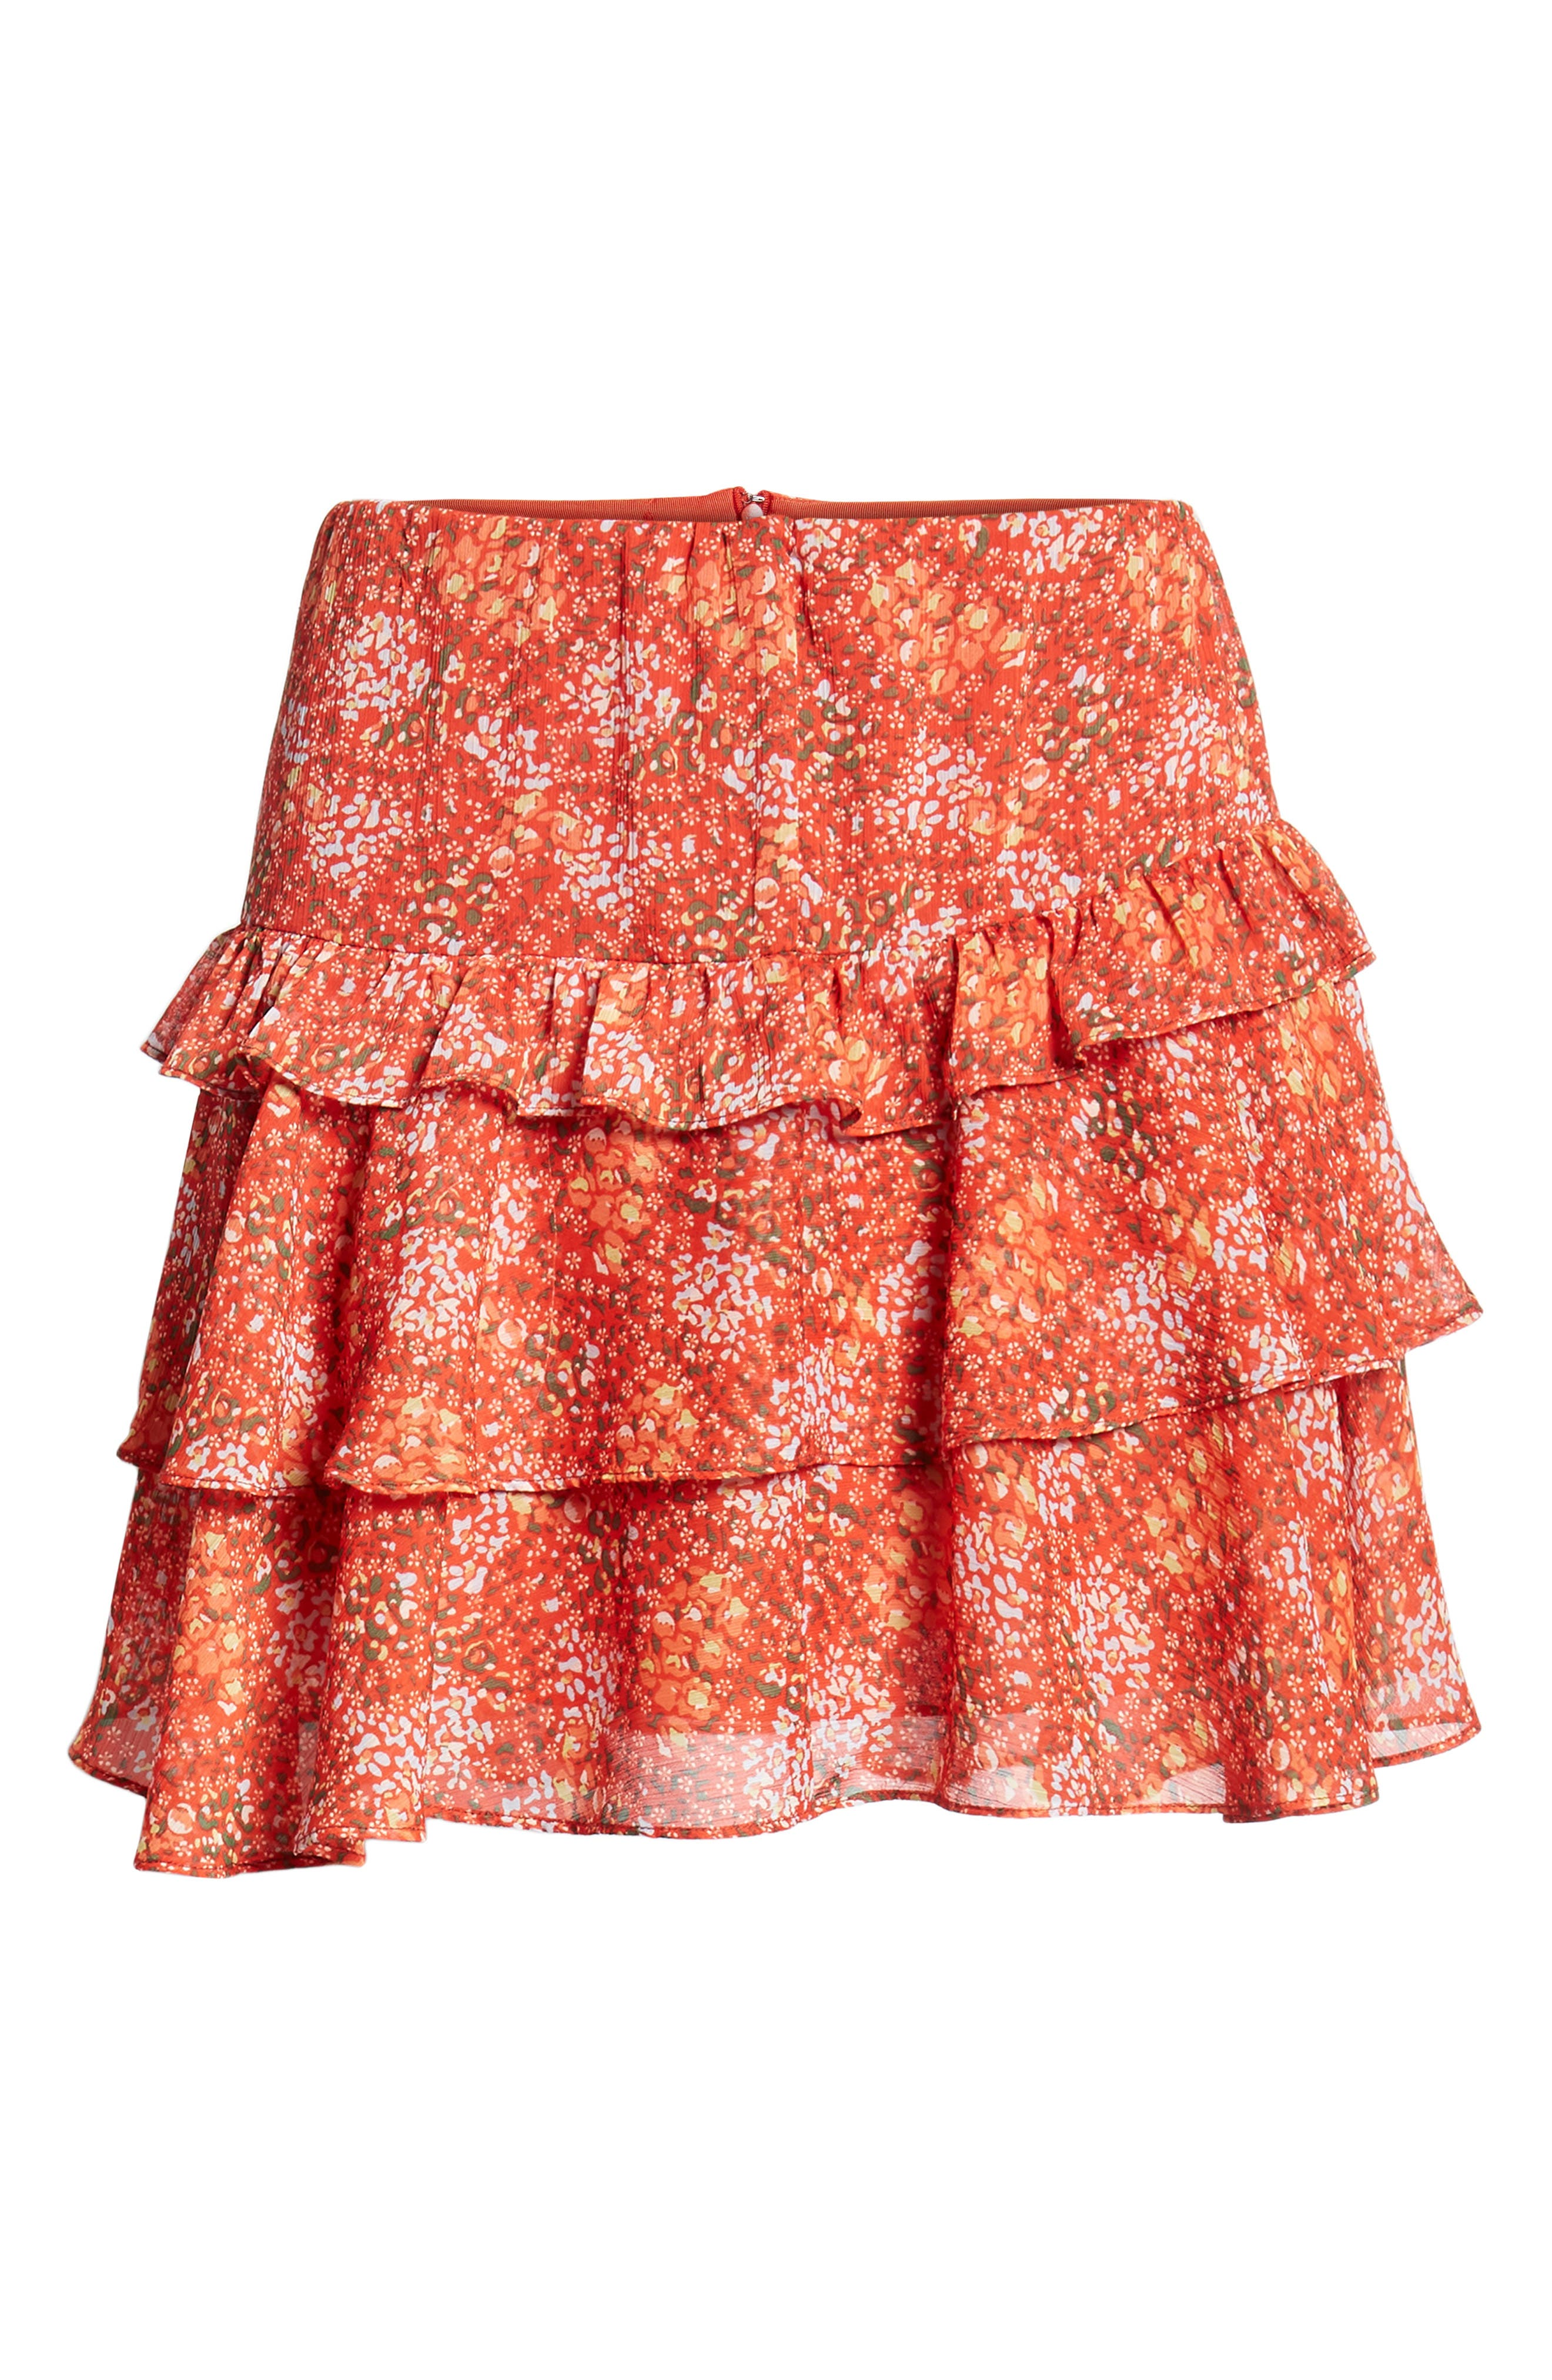 Phoebe Floral Tiered Miniskirt,                             Alternate thumbnail 6, color,                             Red Multi